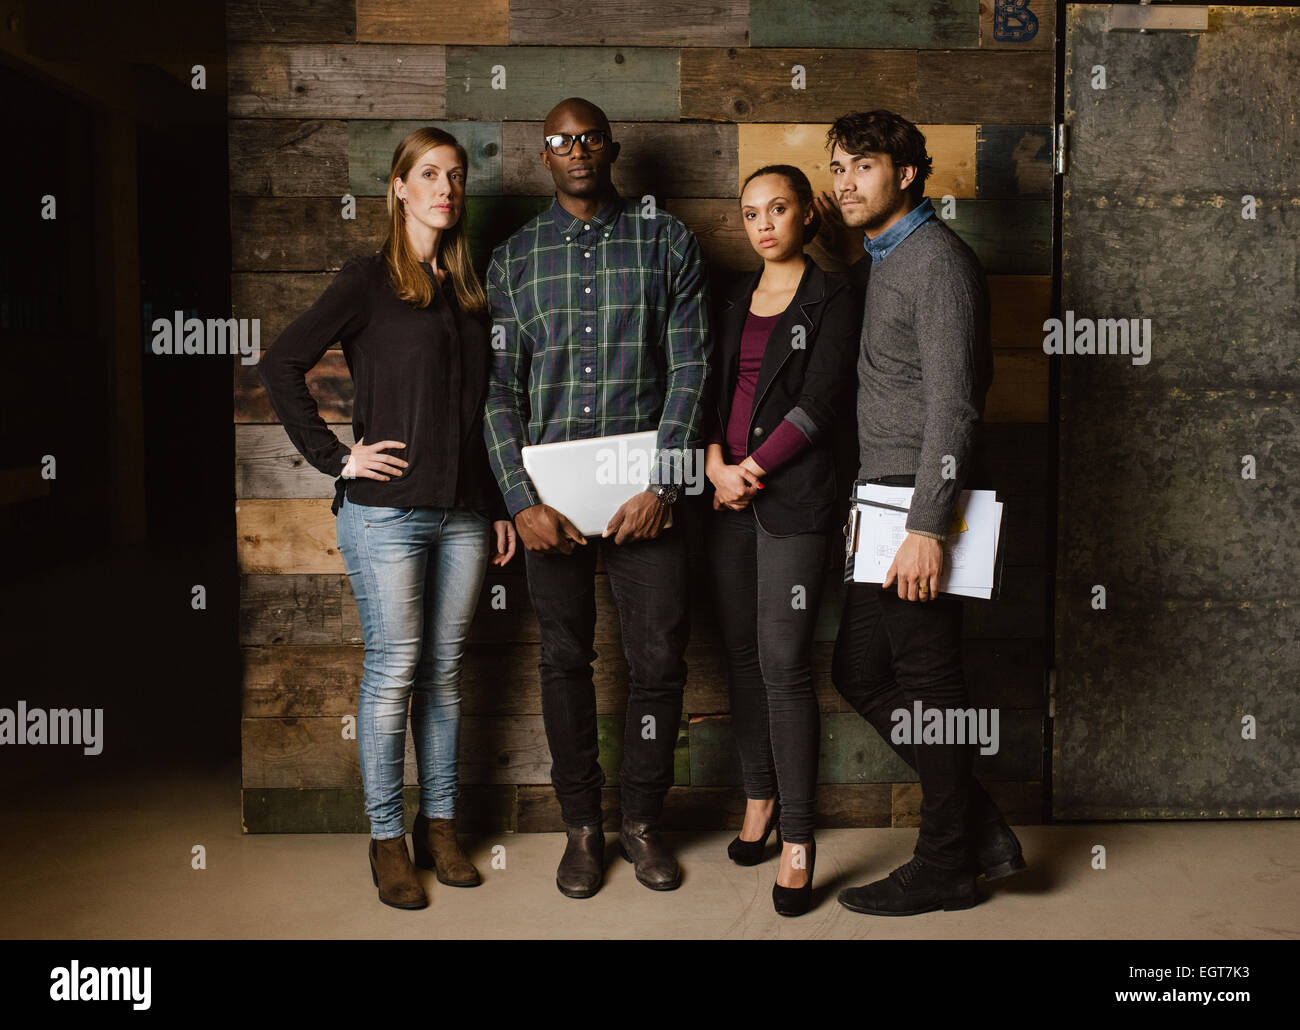 Portrait of young professionals standing together in office. Diverse group of young executives at work. - Stock Image